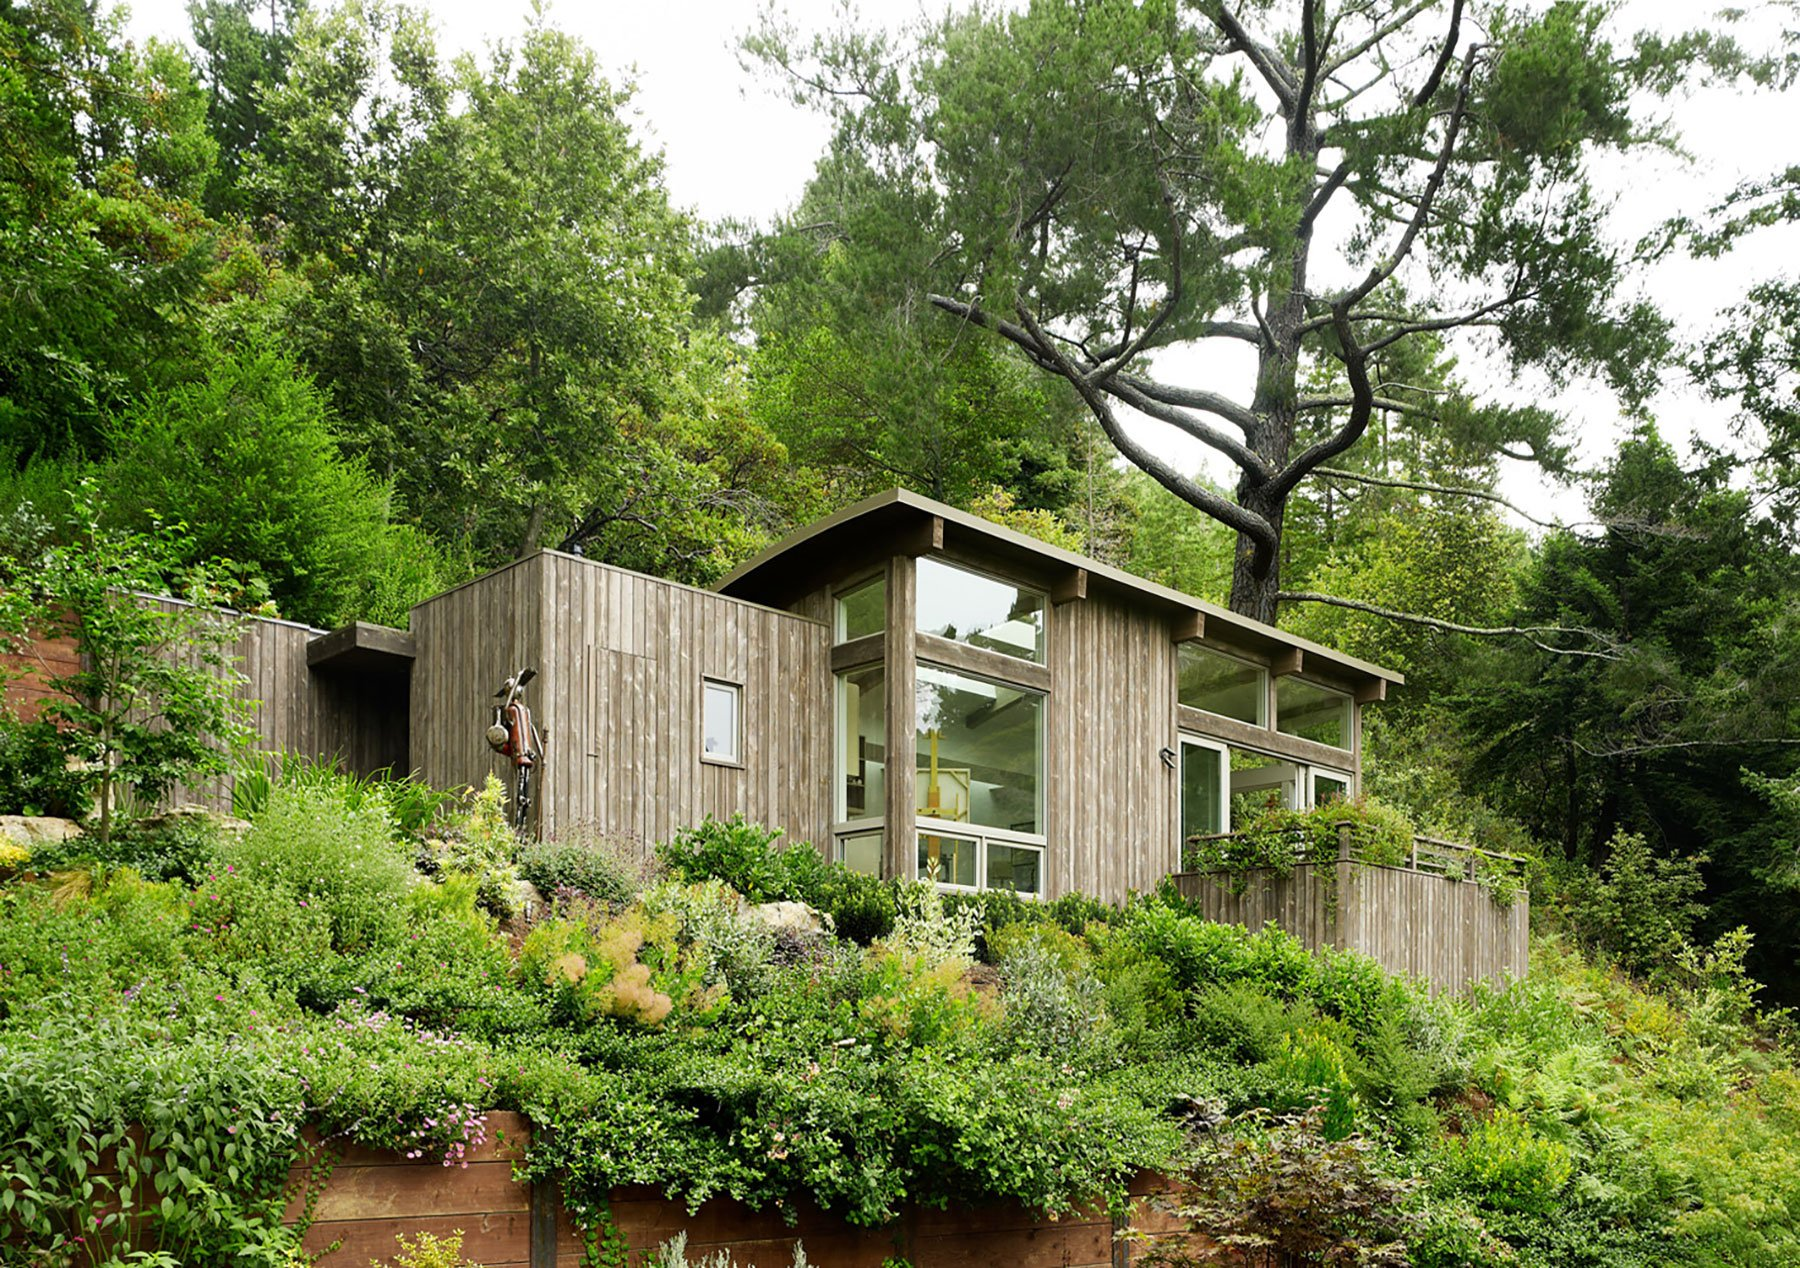 Mill valley cabins by feldman architecture for Feldman architecture